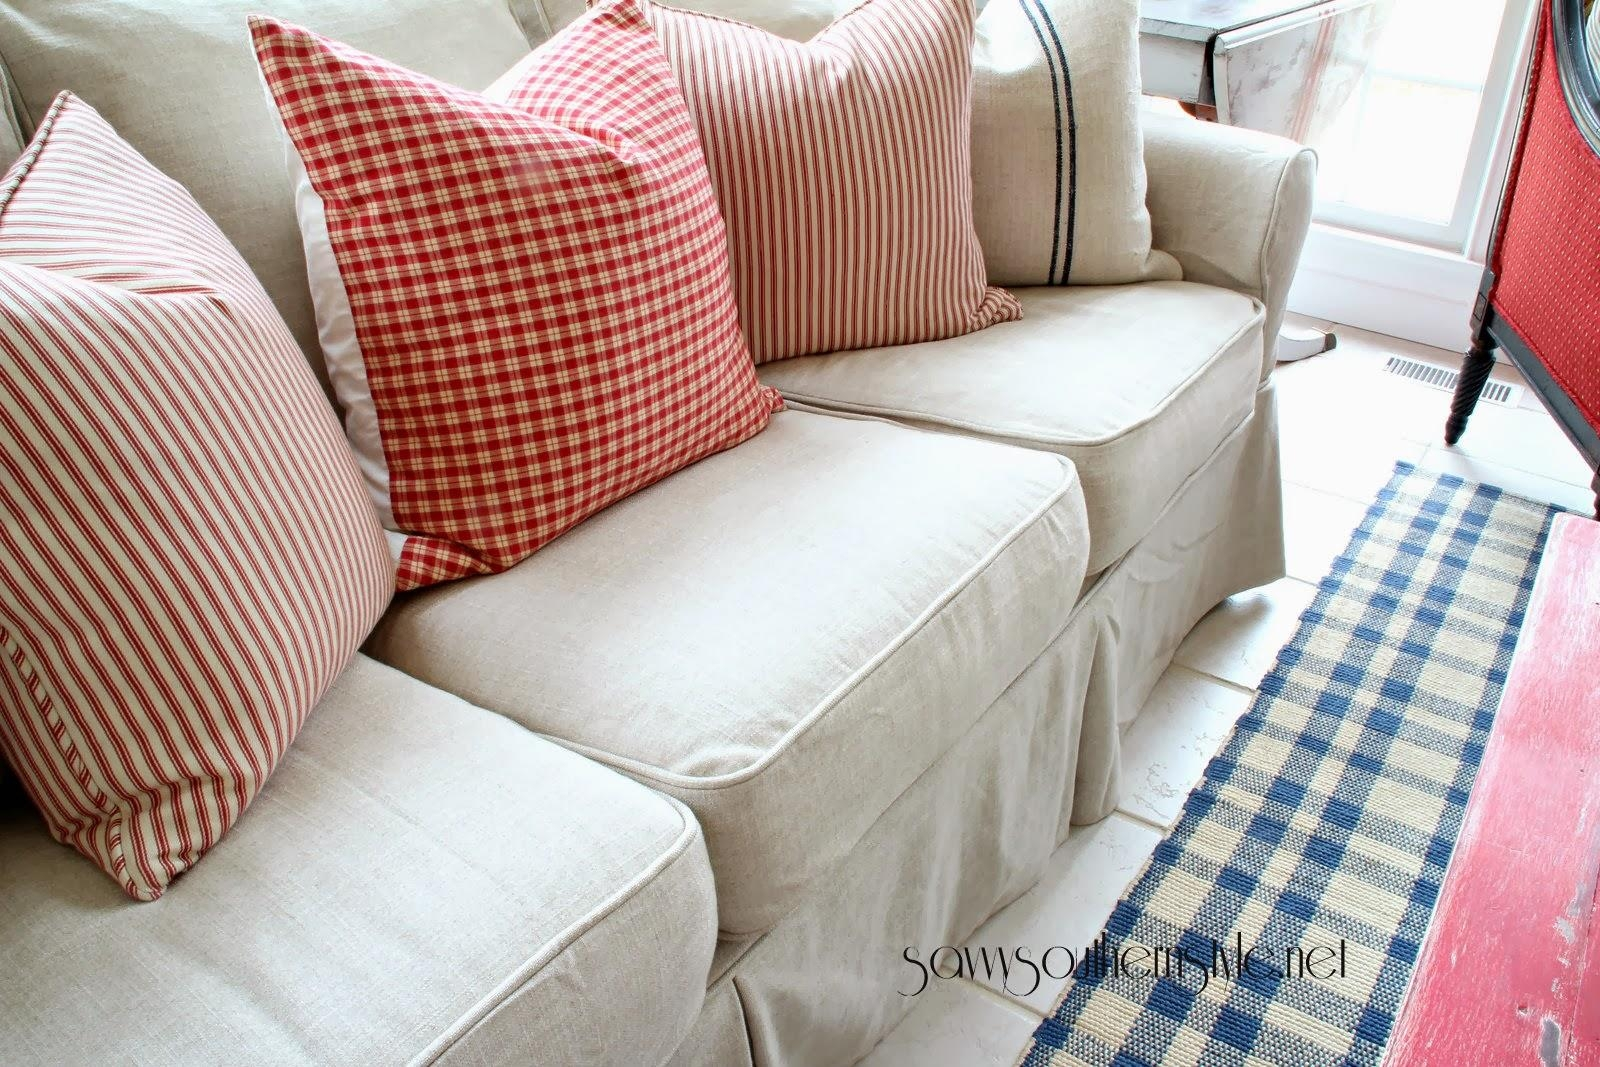 Custom Slipcovers And Couch Cover For Any Sofa Online Within Slipcovers For Sofas And Chairs (Image 7 of 20)